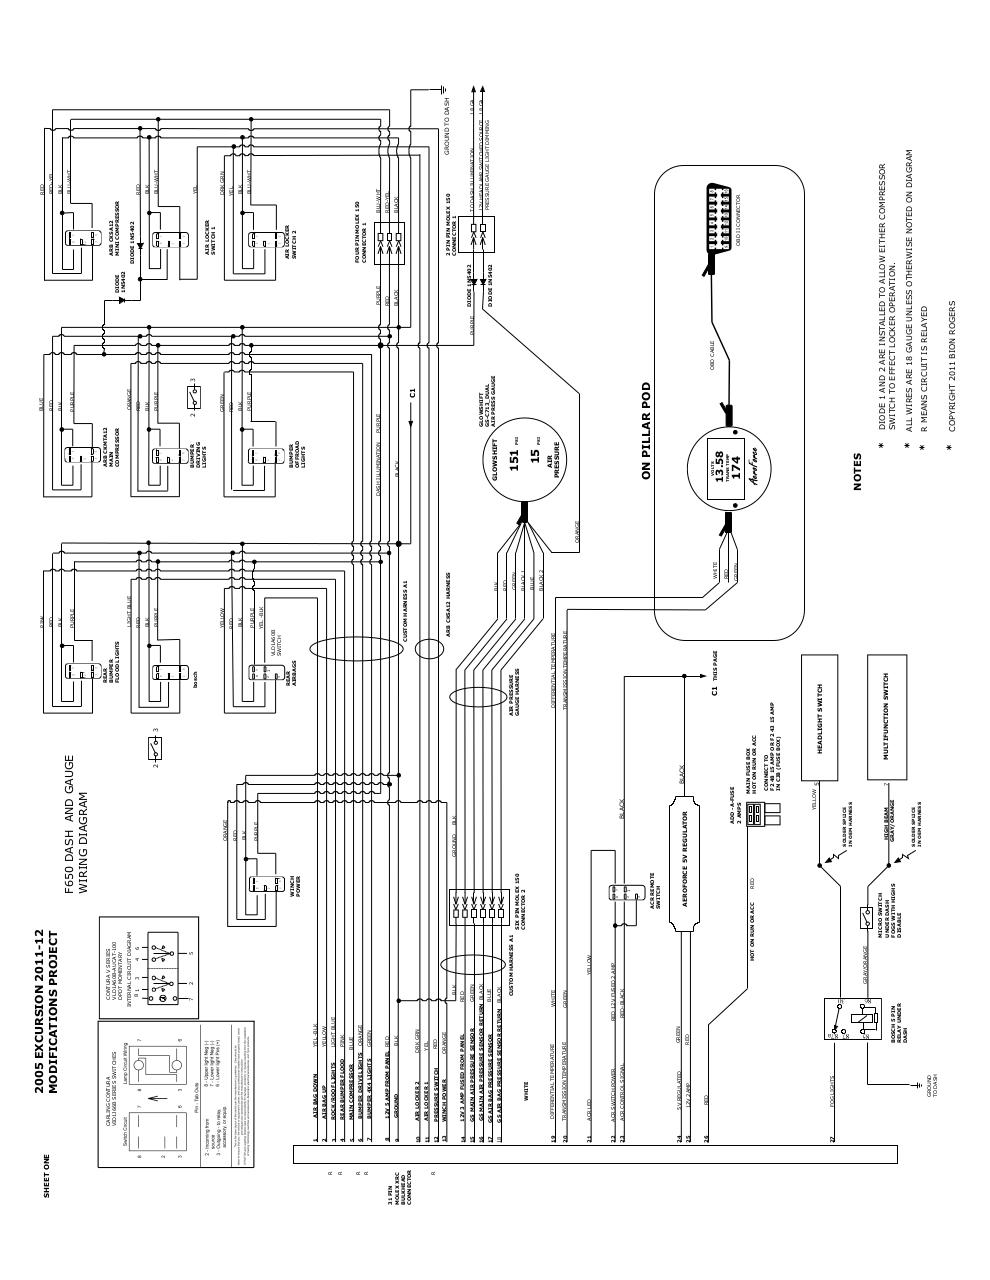 Arb Ckma12 Wiring Diagram : 25 Wiring Diagram Images